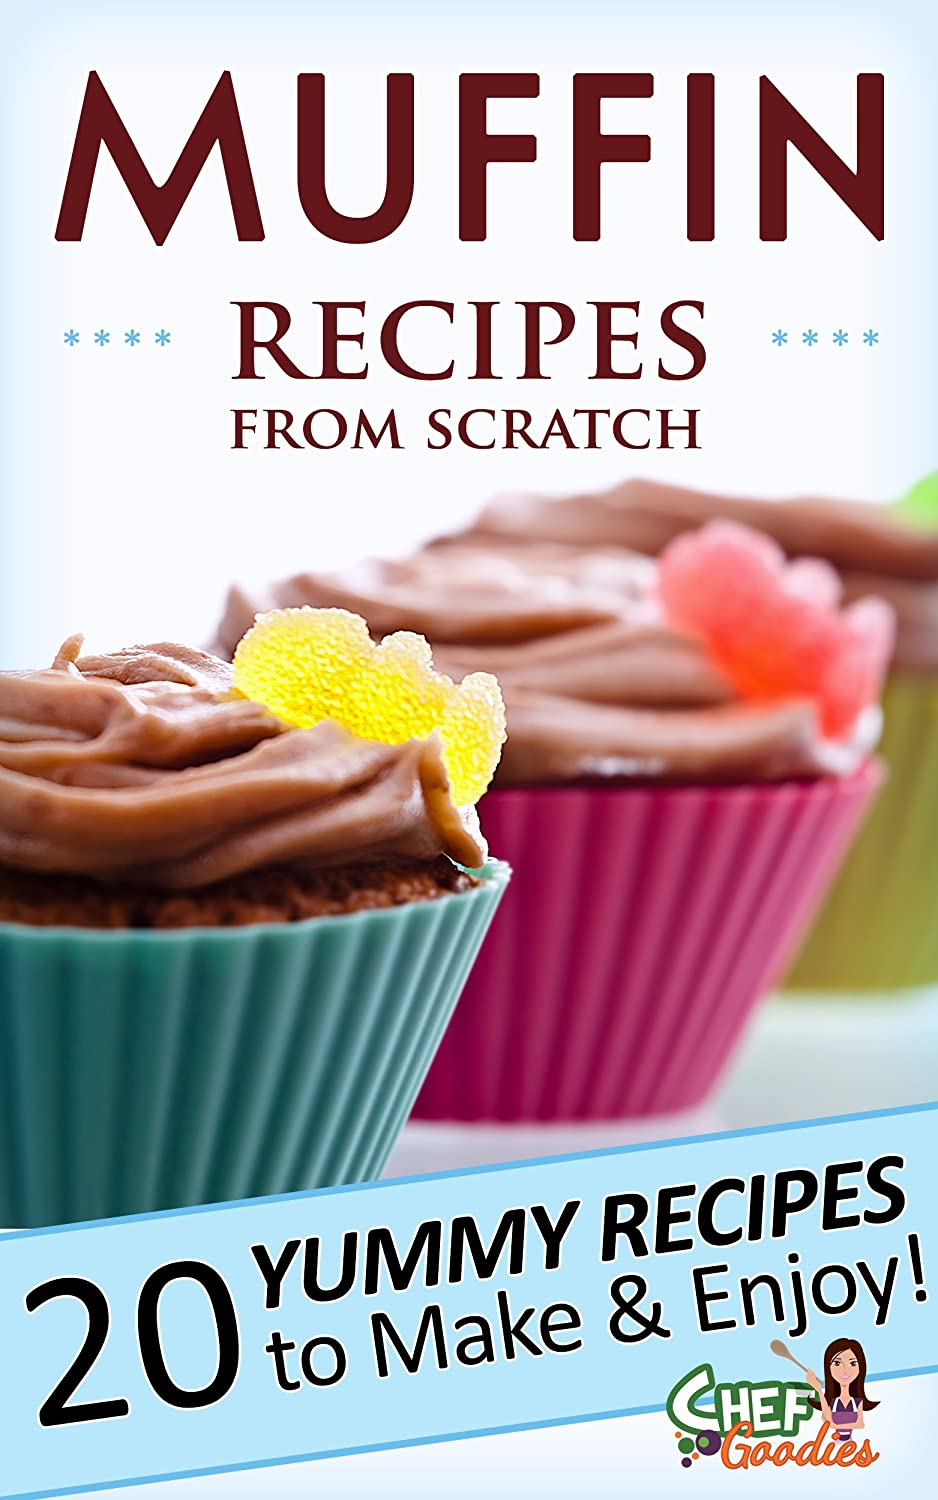 muffinrecipes-kindlecover